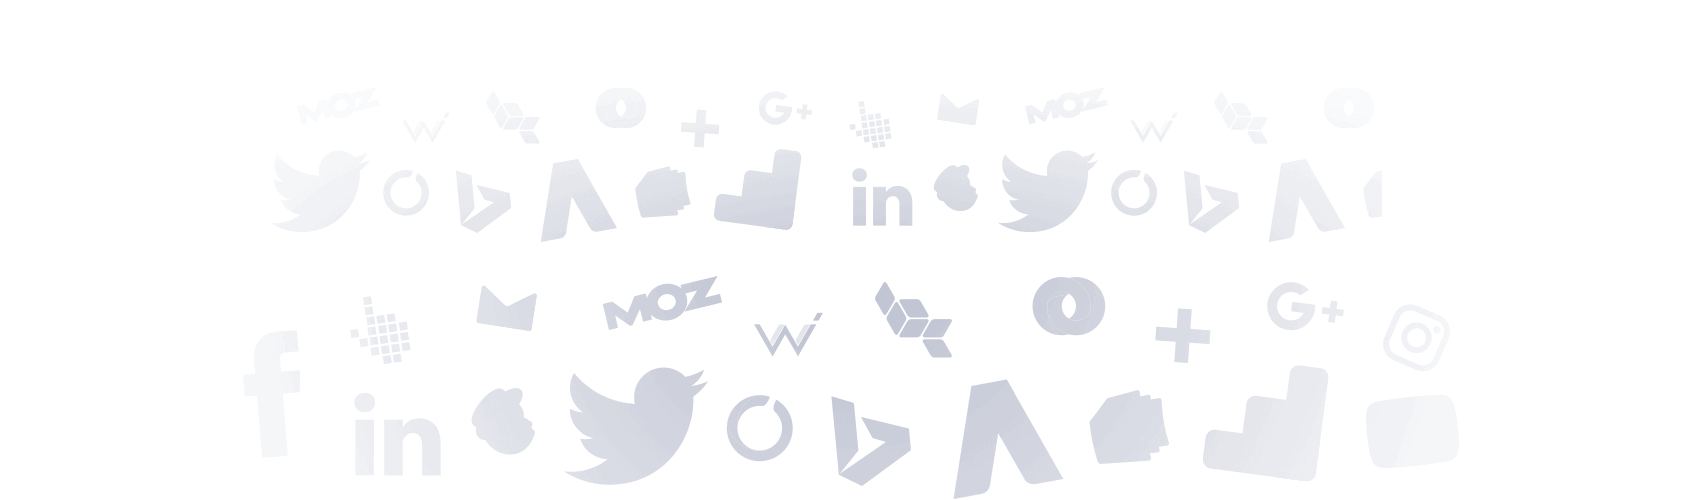 social media report background